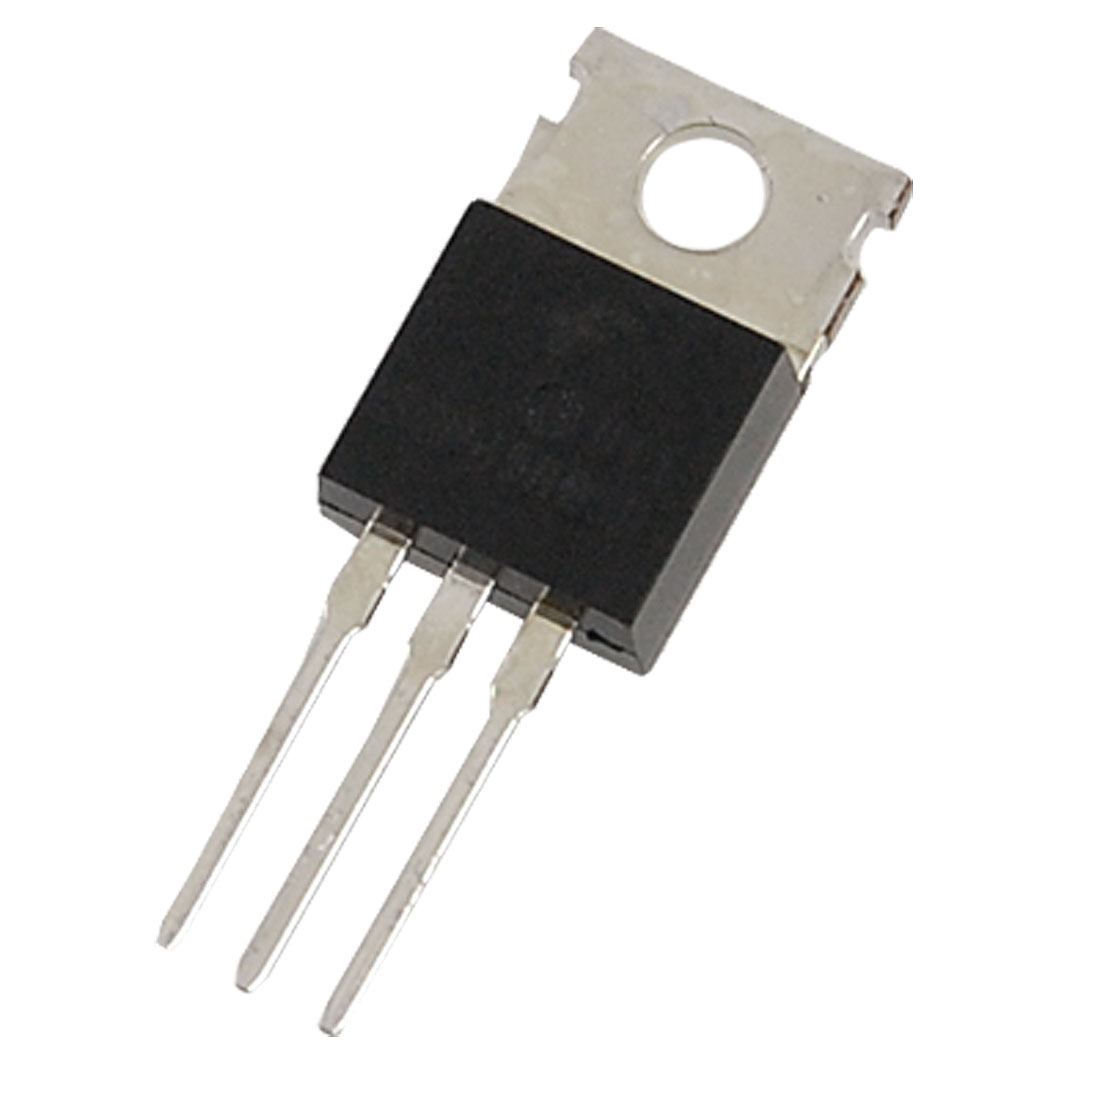 SSP45N20A 200V 45A Power MOSFET N-channel Transistor TO-220